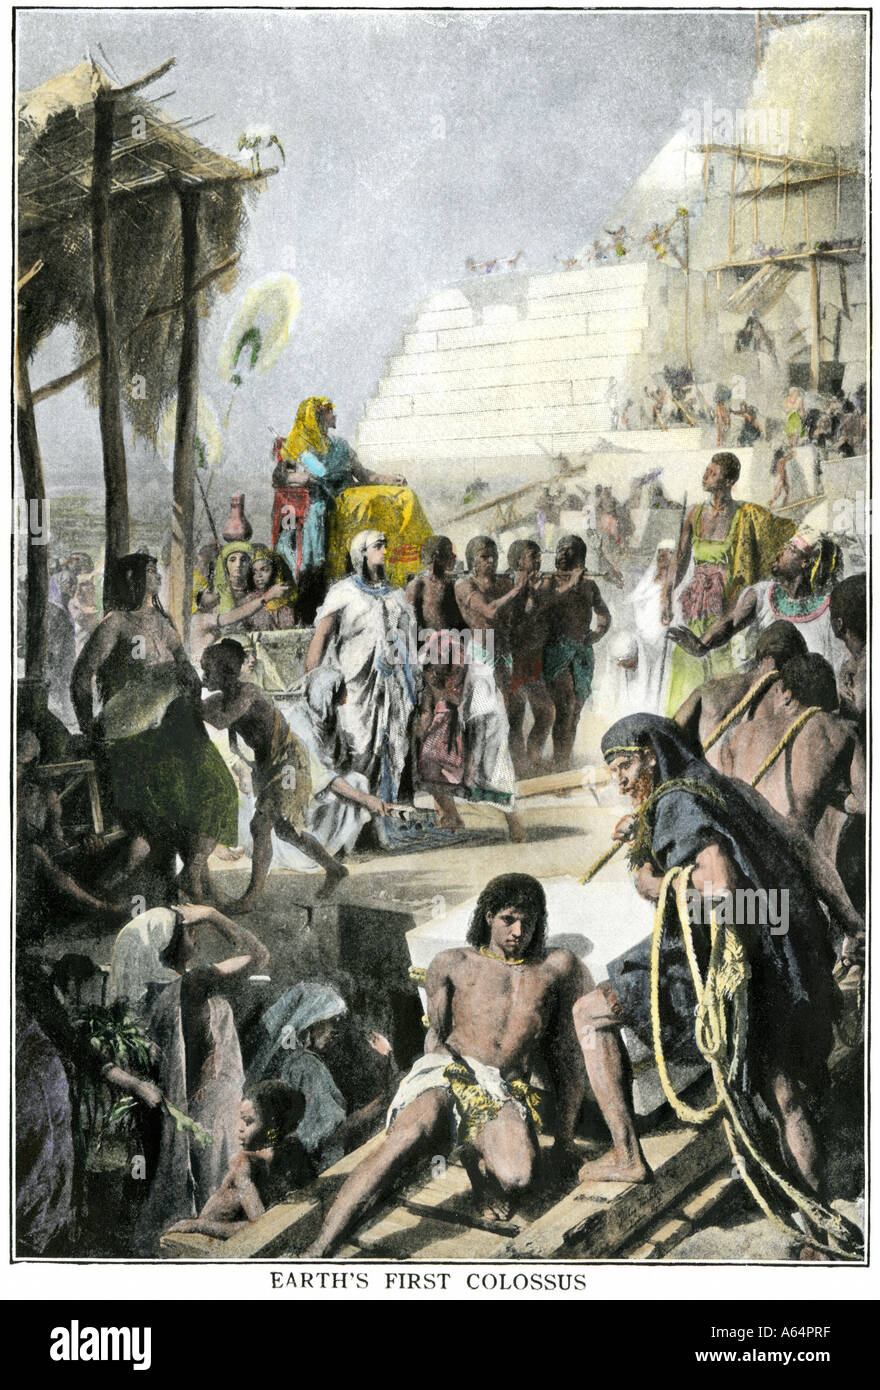 Pharaoh Khufu or Cheops supervising construction of the Great Pyramid in ancient Egypt. Hand-colored halftone of an illustration - Stock Image